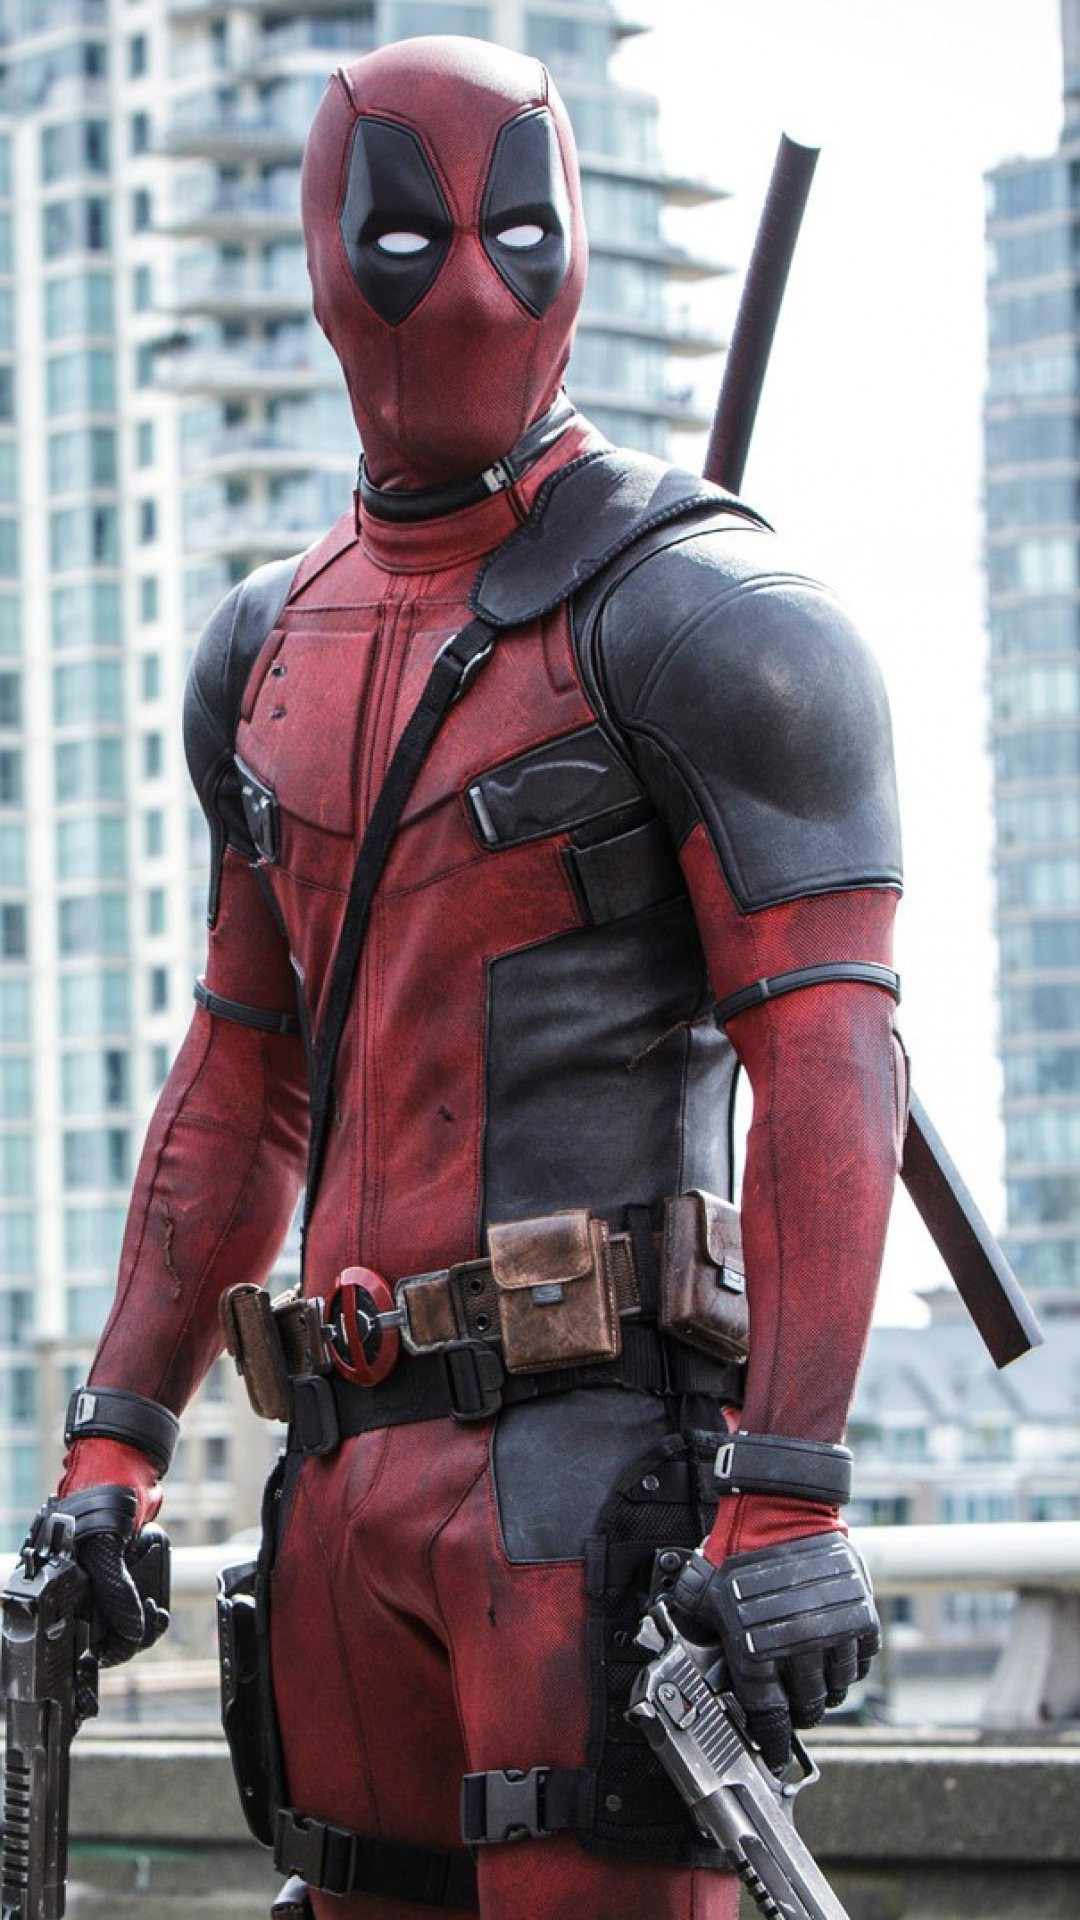 Amazing Wallpaper Movie Iphone 5 - deadpool-movie-scene-wallpaper-background-1080x1920  Best Photo Reference_803376.jpg